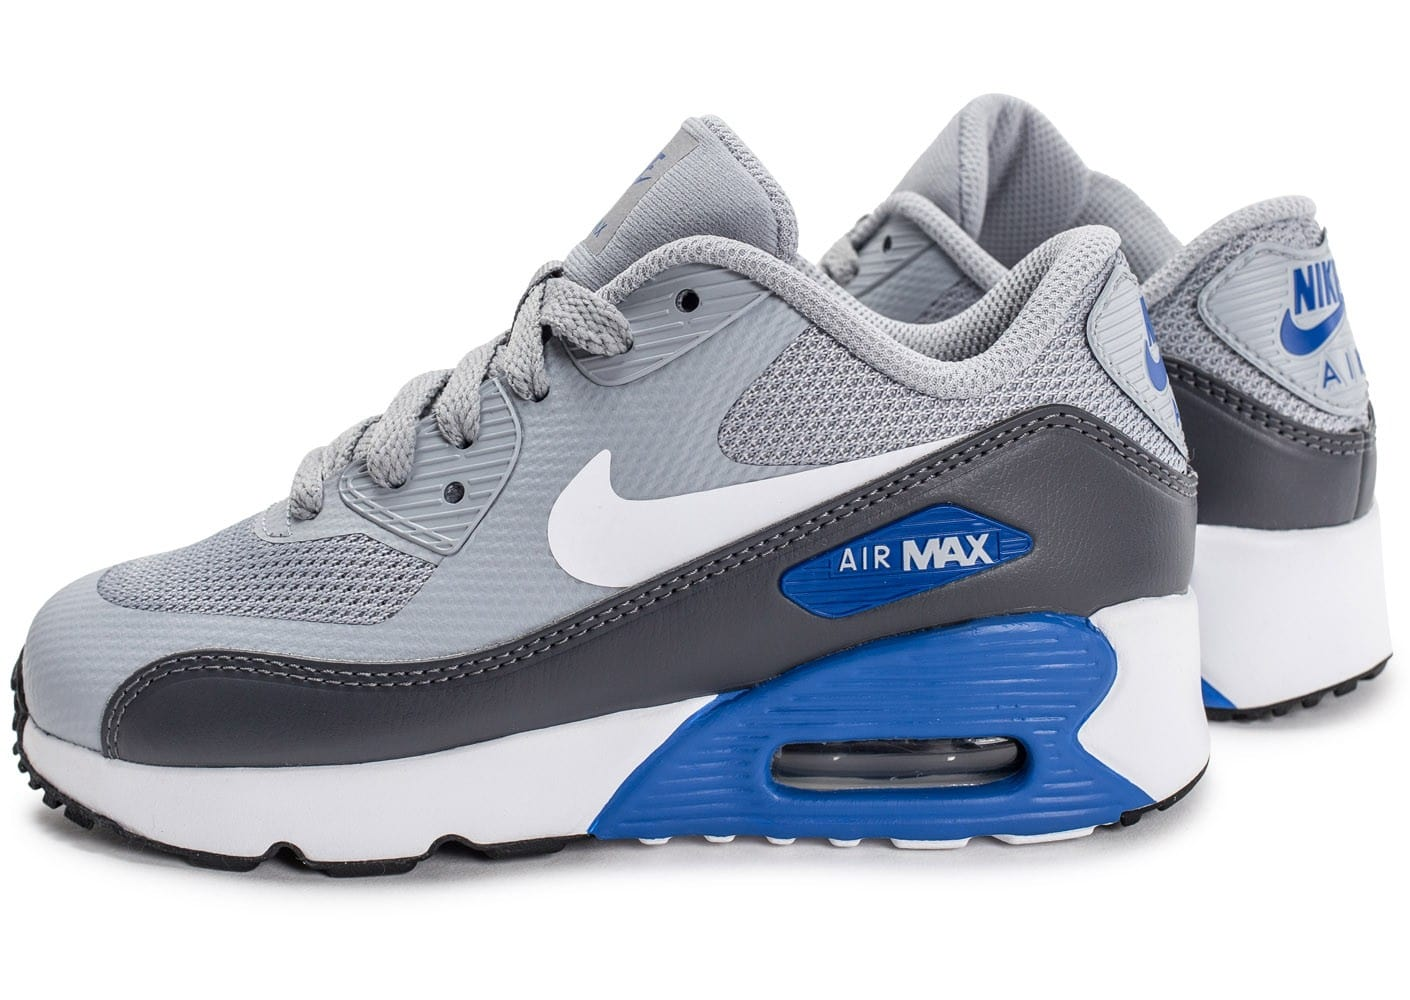 special for shoe shop best sellers new photos Nike Air Max 90 Ultra 2.0 Ultra Enfant grise - Chaussures Enfant ...